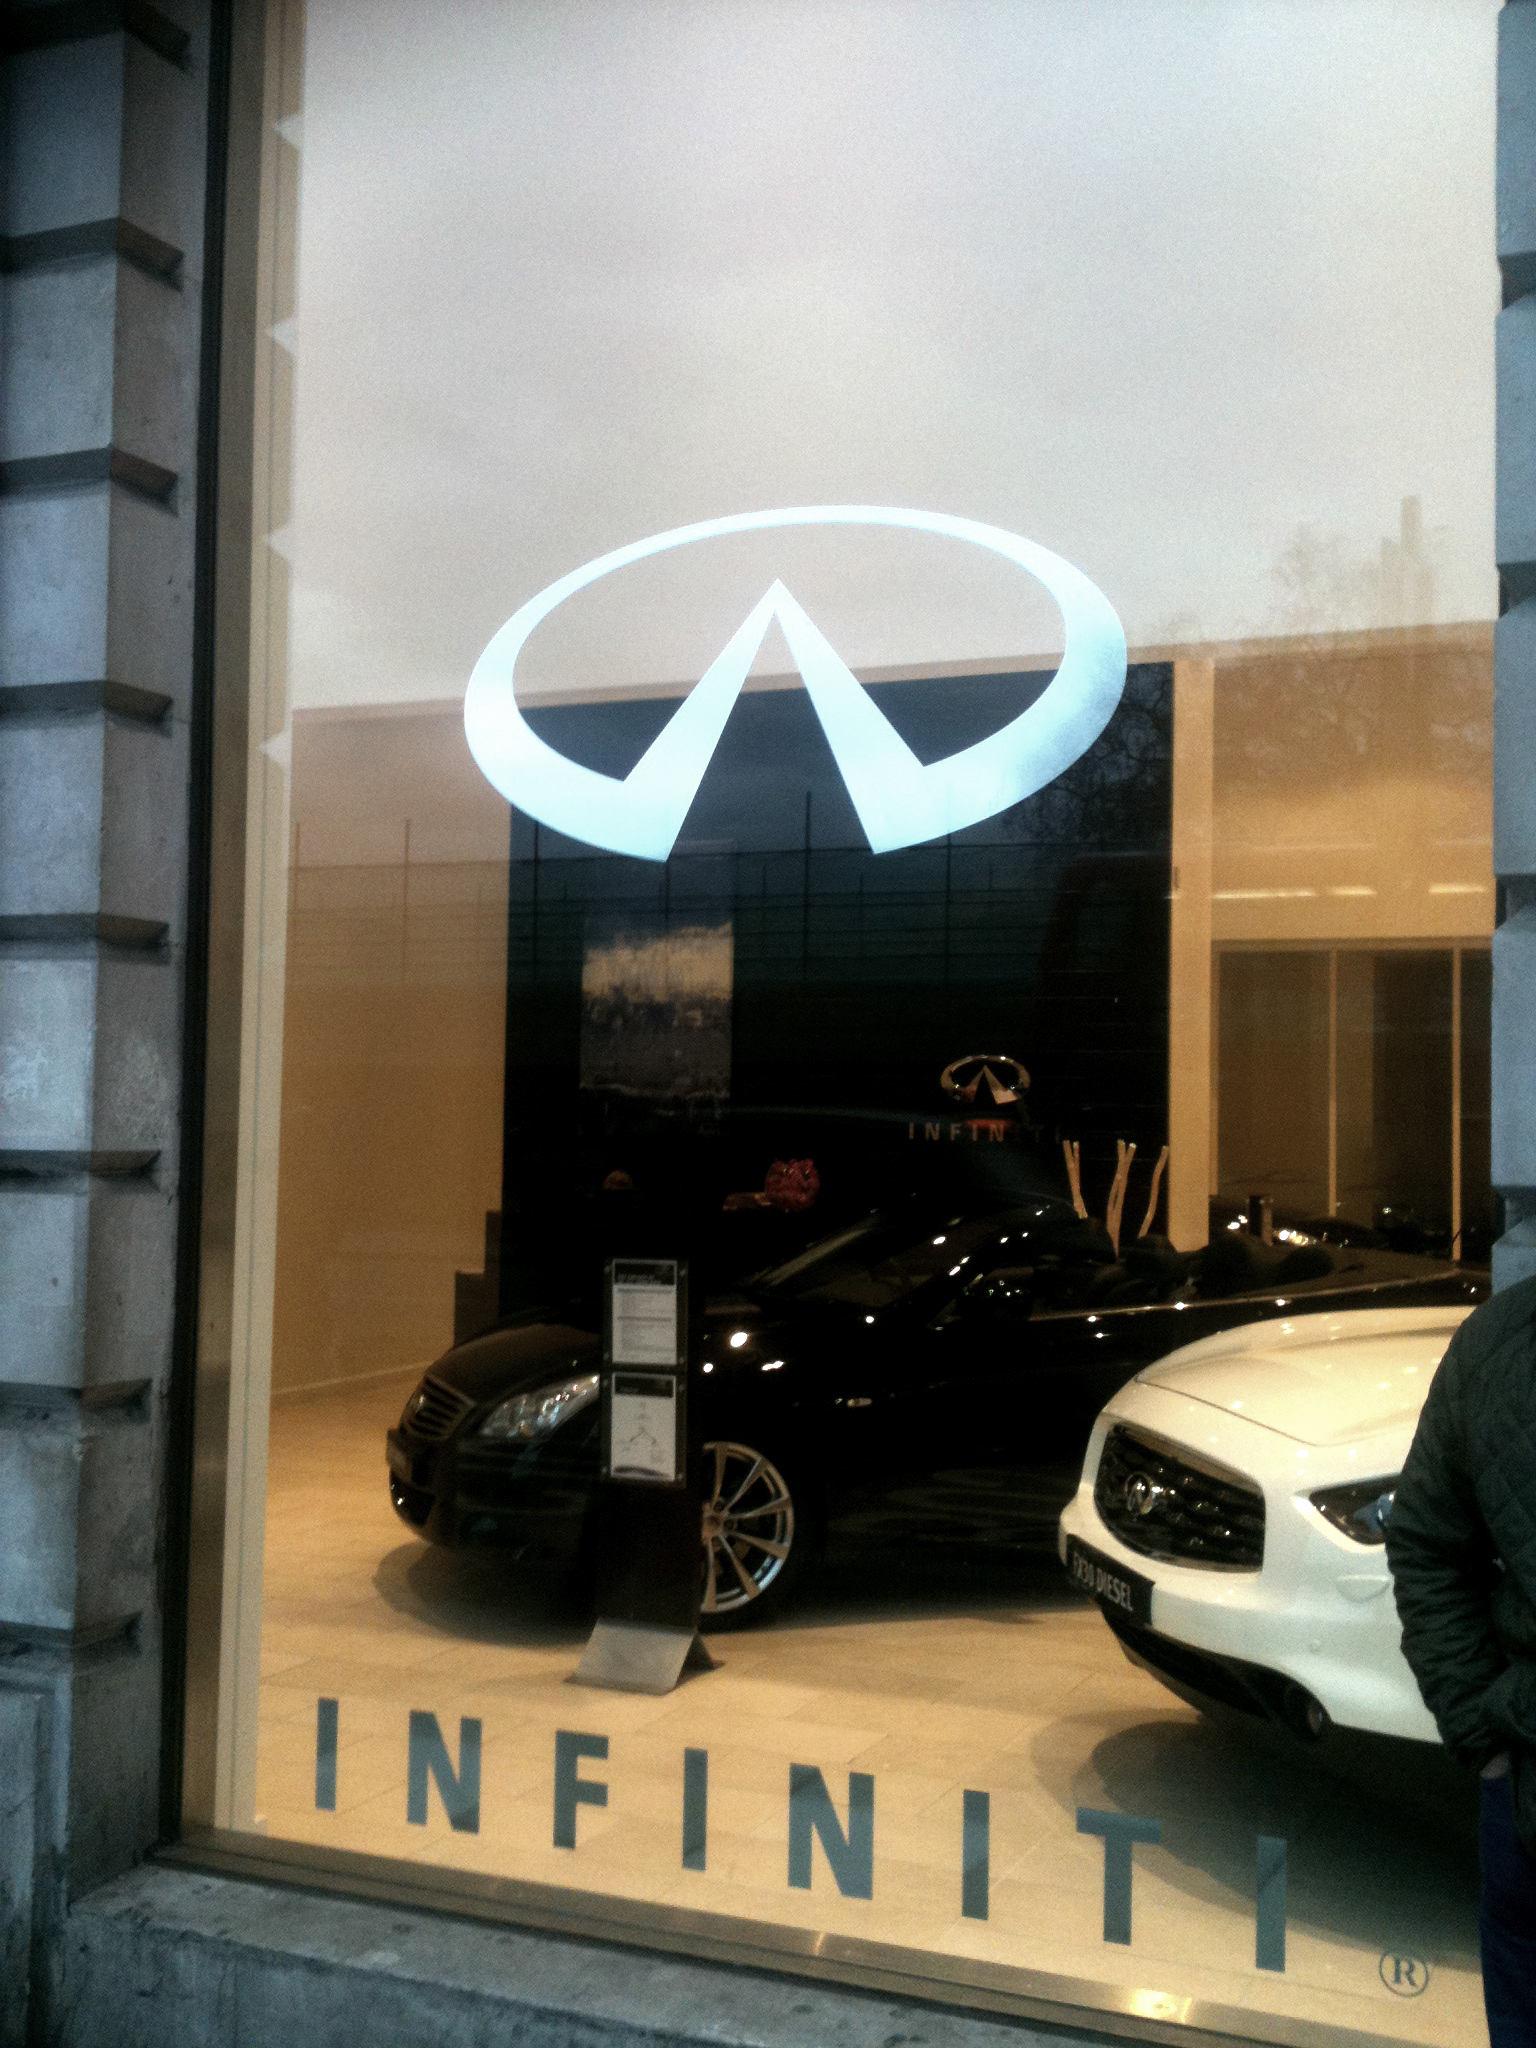 Door Signs Infiniti signs London installed by E Signs ® www.e-signs.co.uk